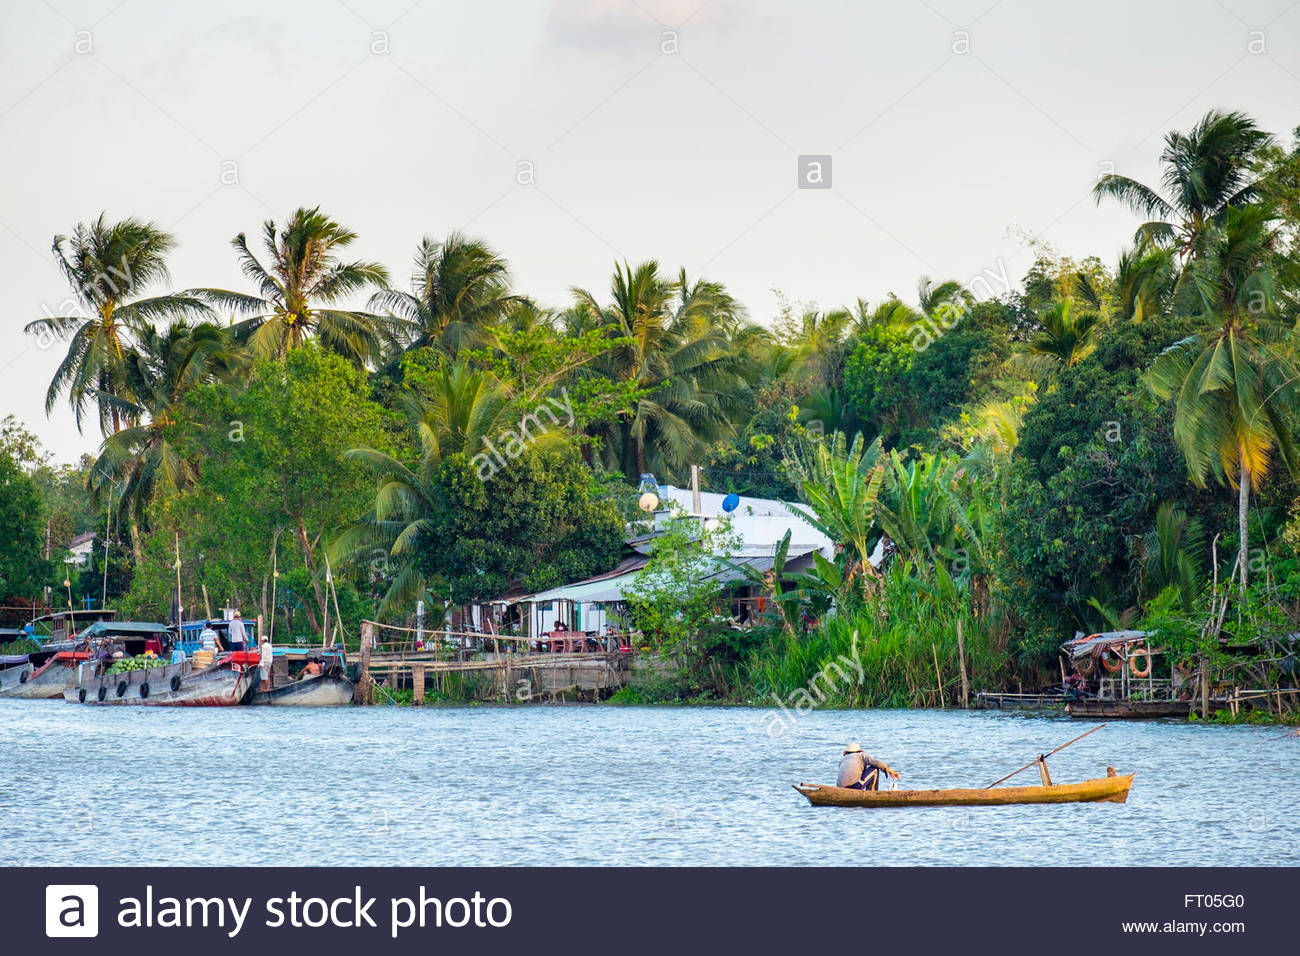 A man fishing in a small boat on the Can Tho River, a branch of the Mekong River, Can Tho, Mekong Delta, Vietnam - Stock Image